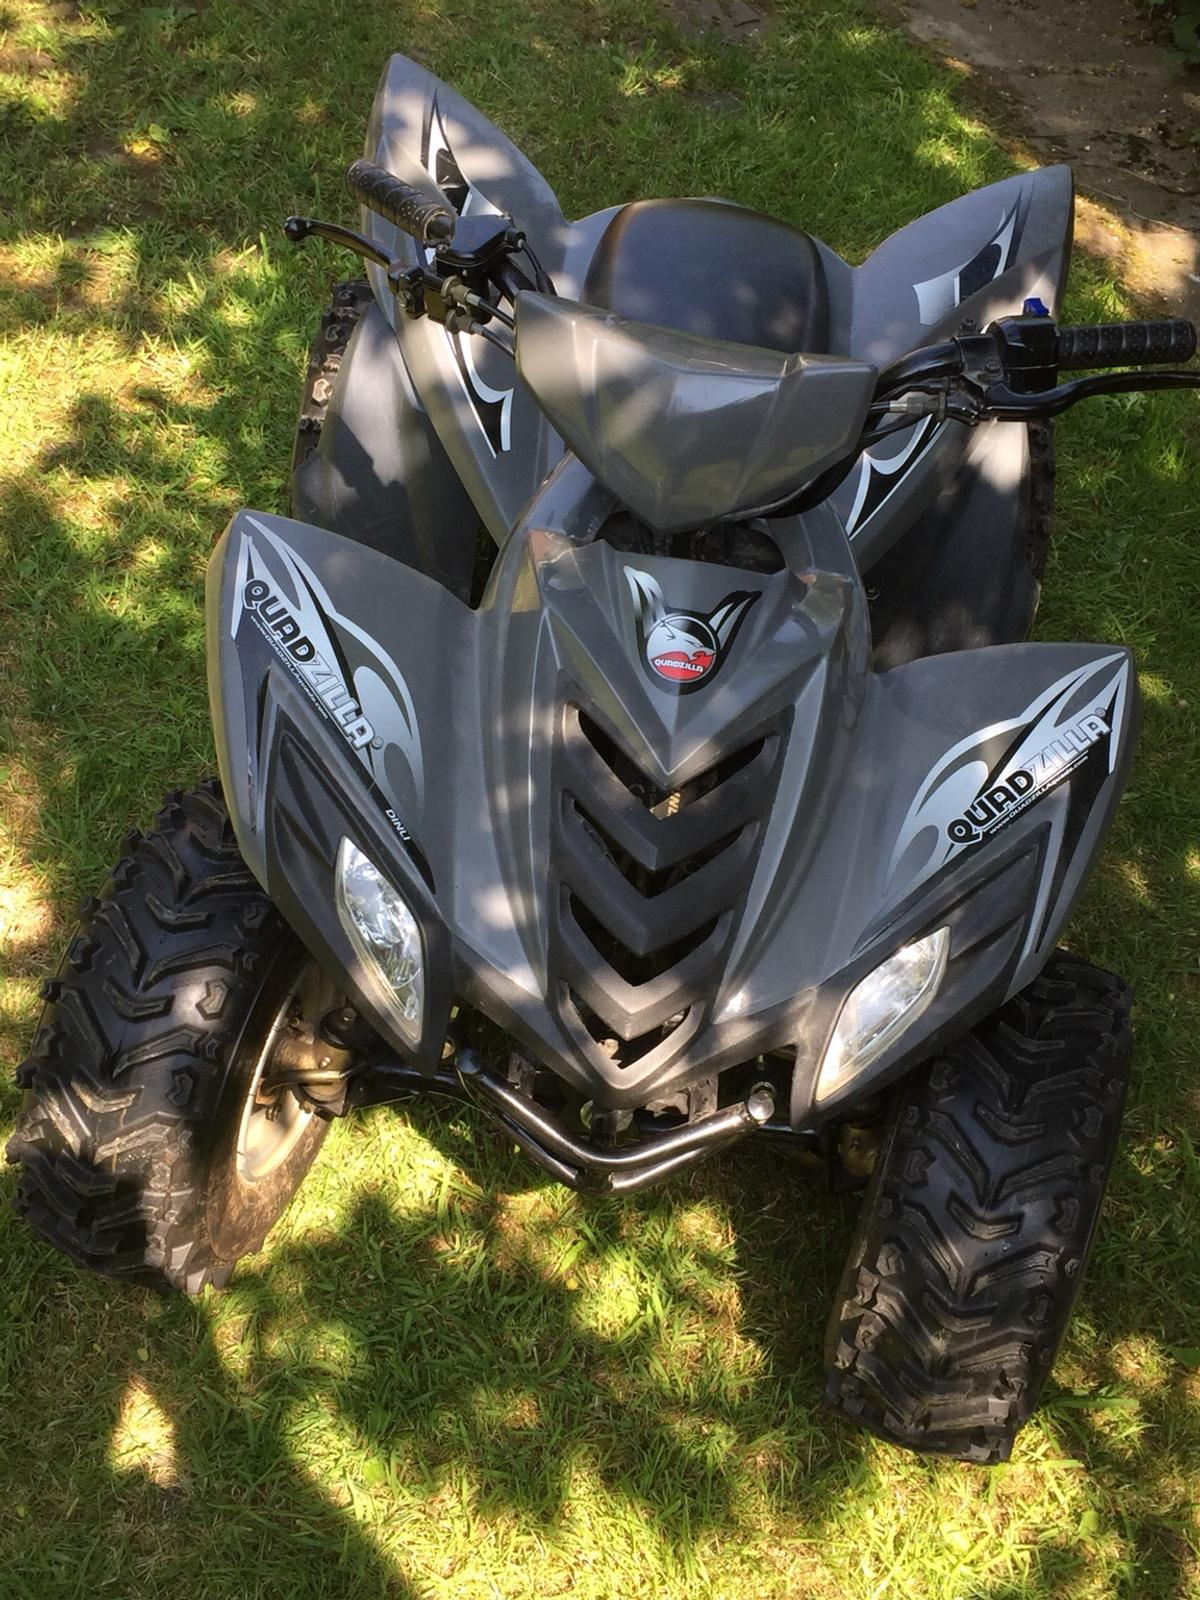 Quadzilla zr 50 in BD14 Bradford for £395 00 for sale - Shpock